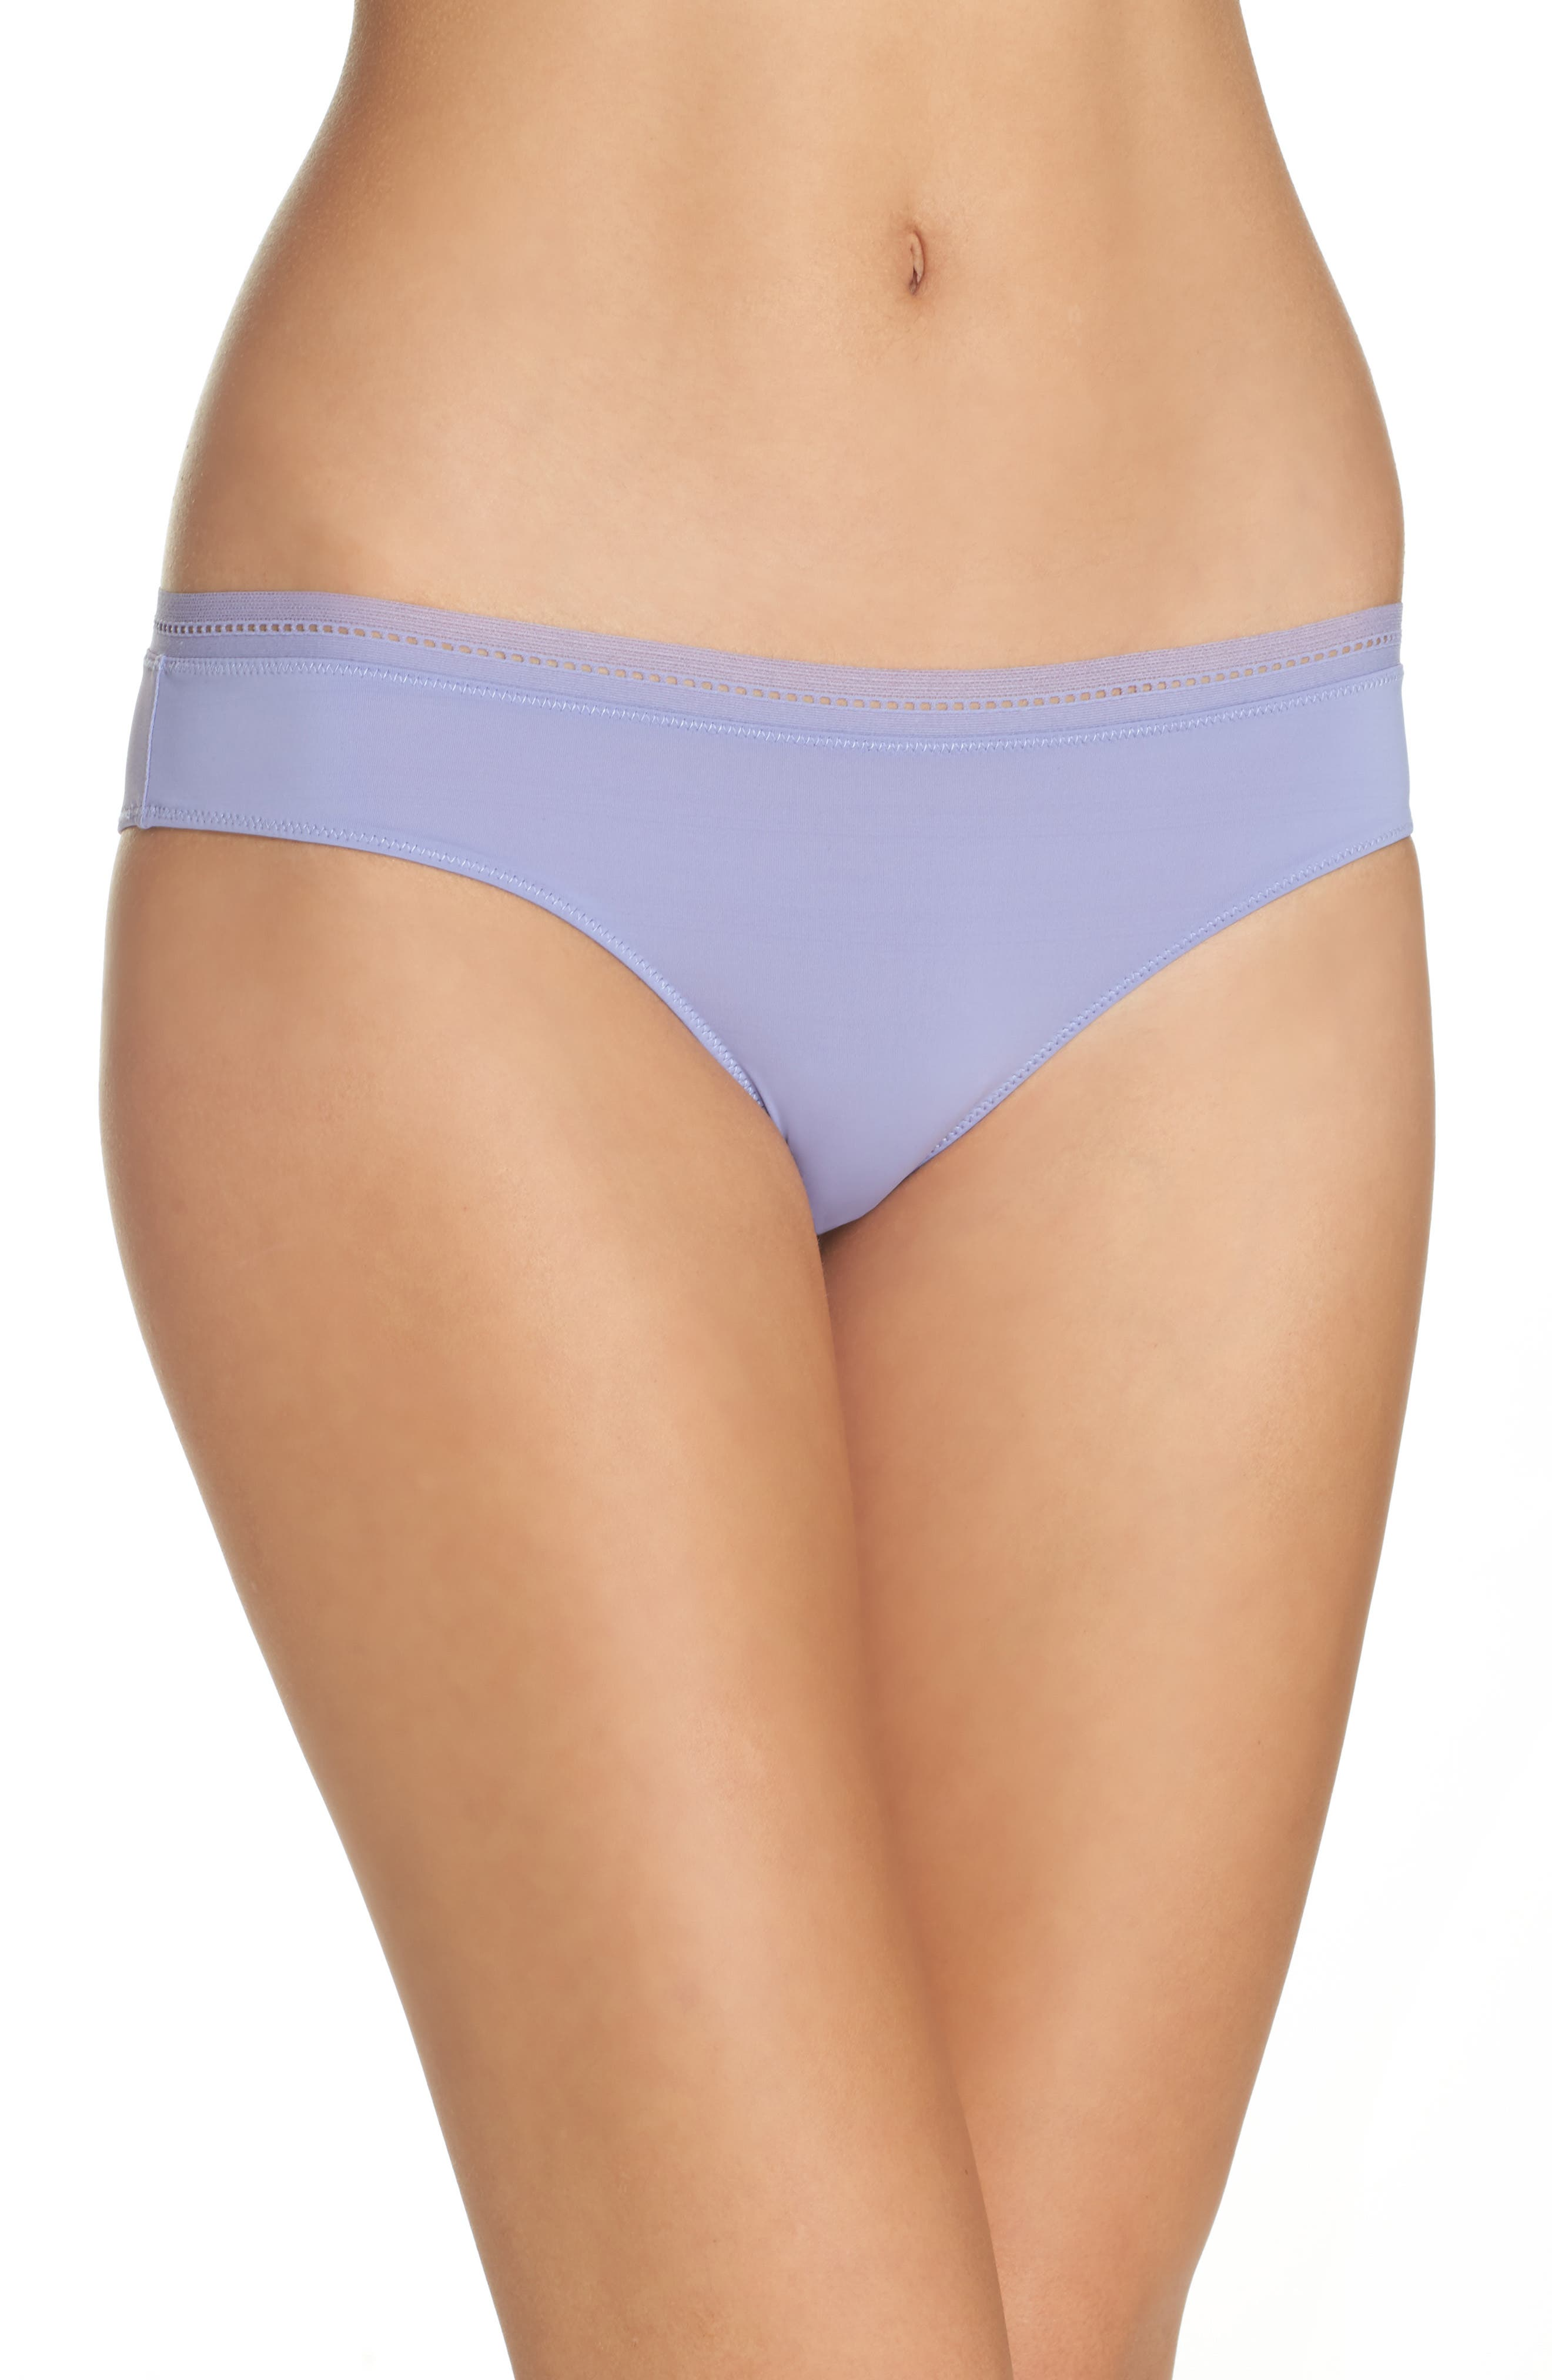 Intimately FP Truth Or Dare Tanga,                         Main,                         color, Light Purple